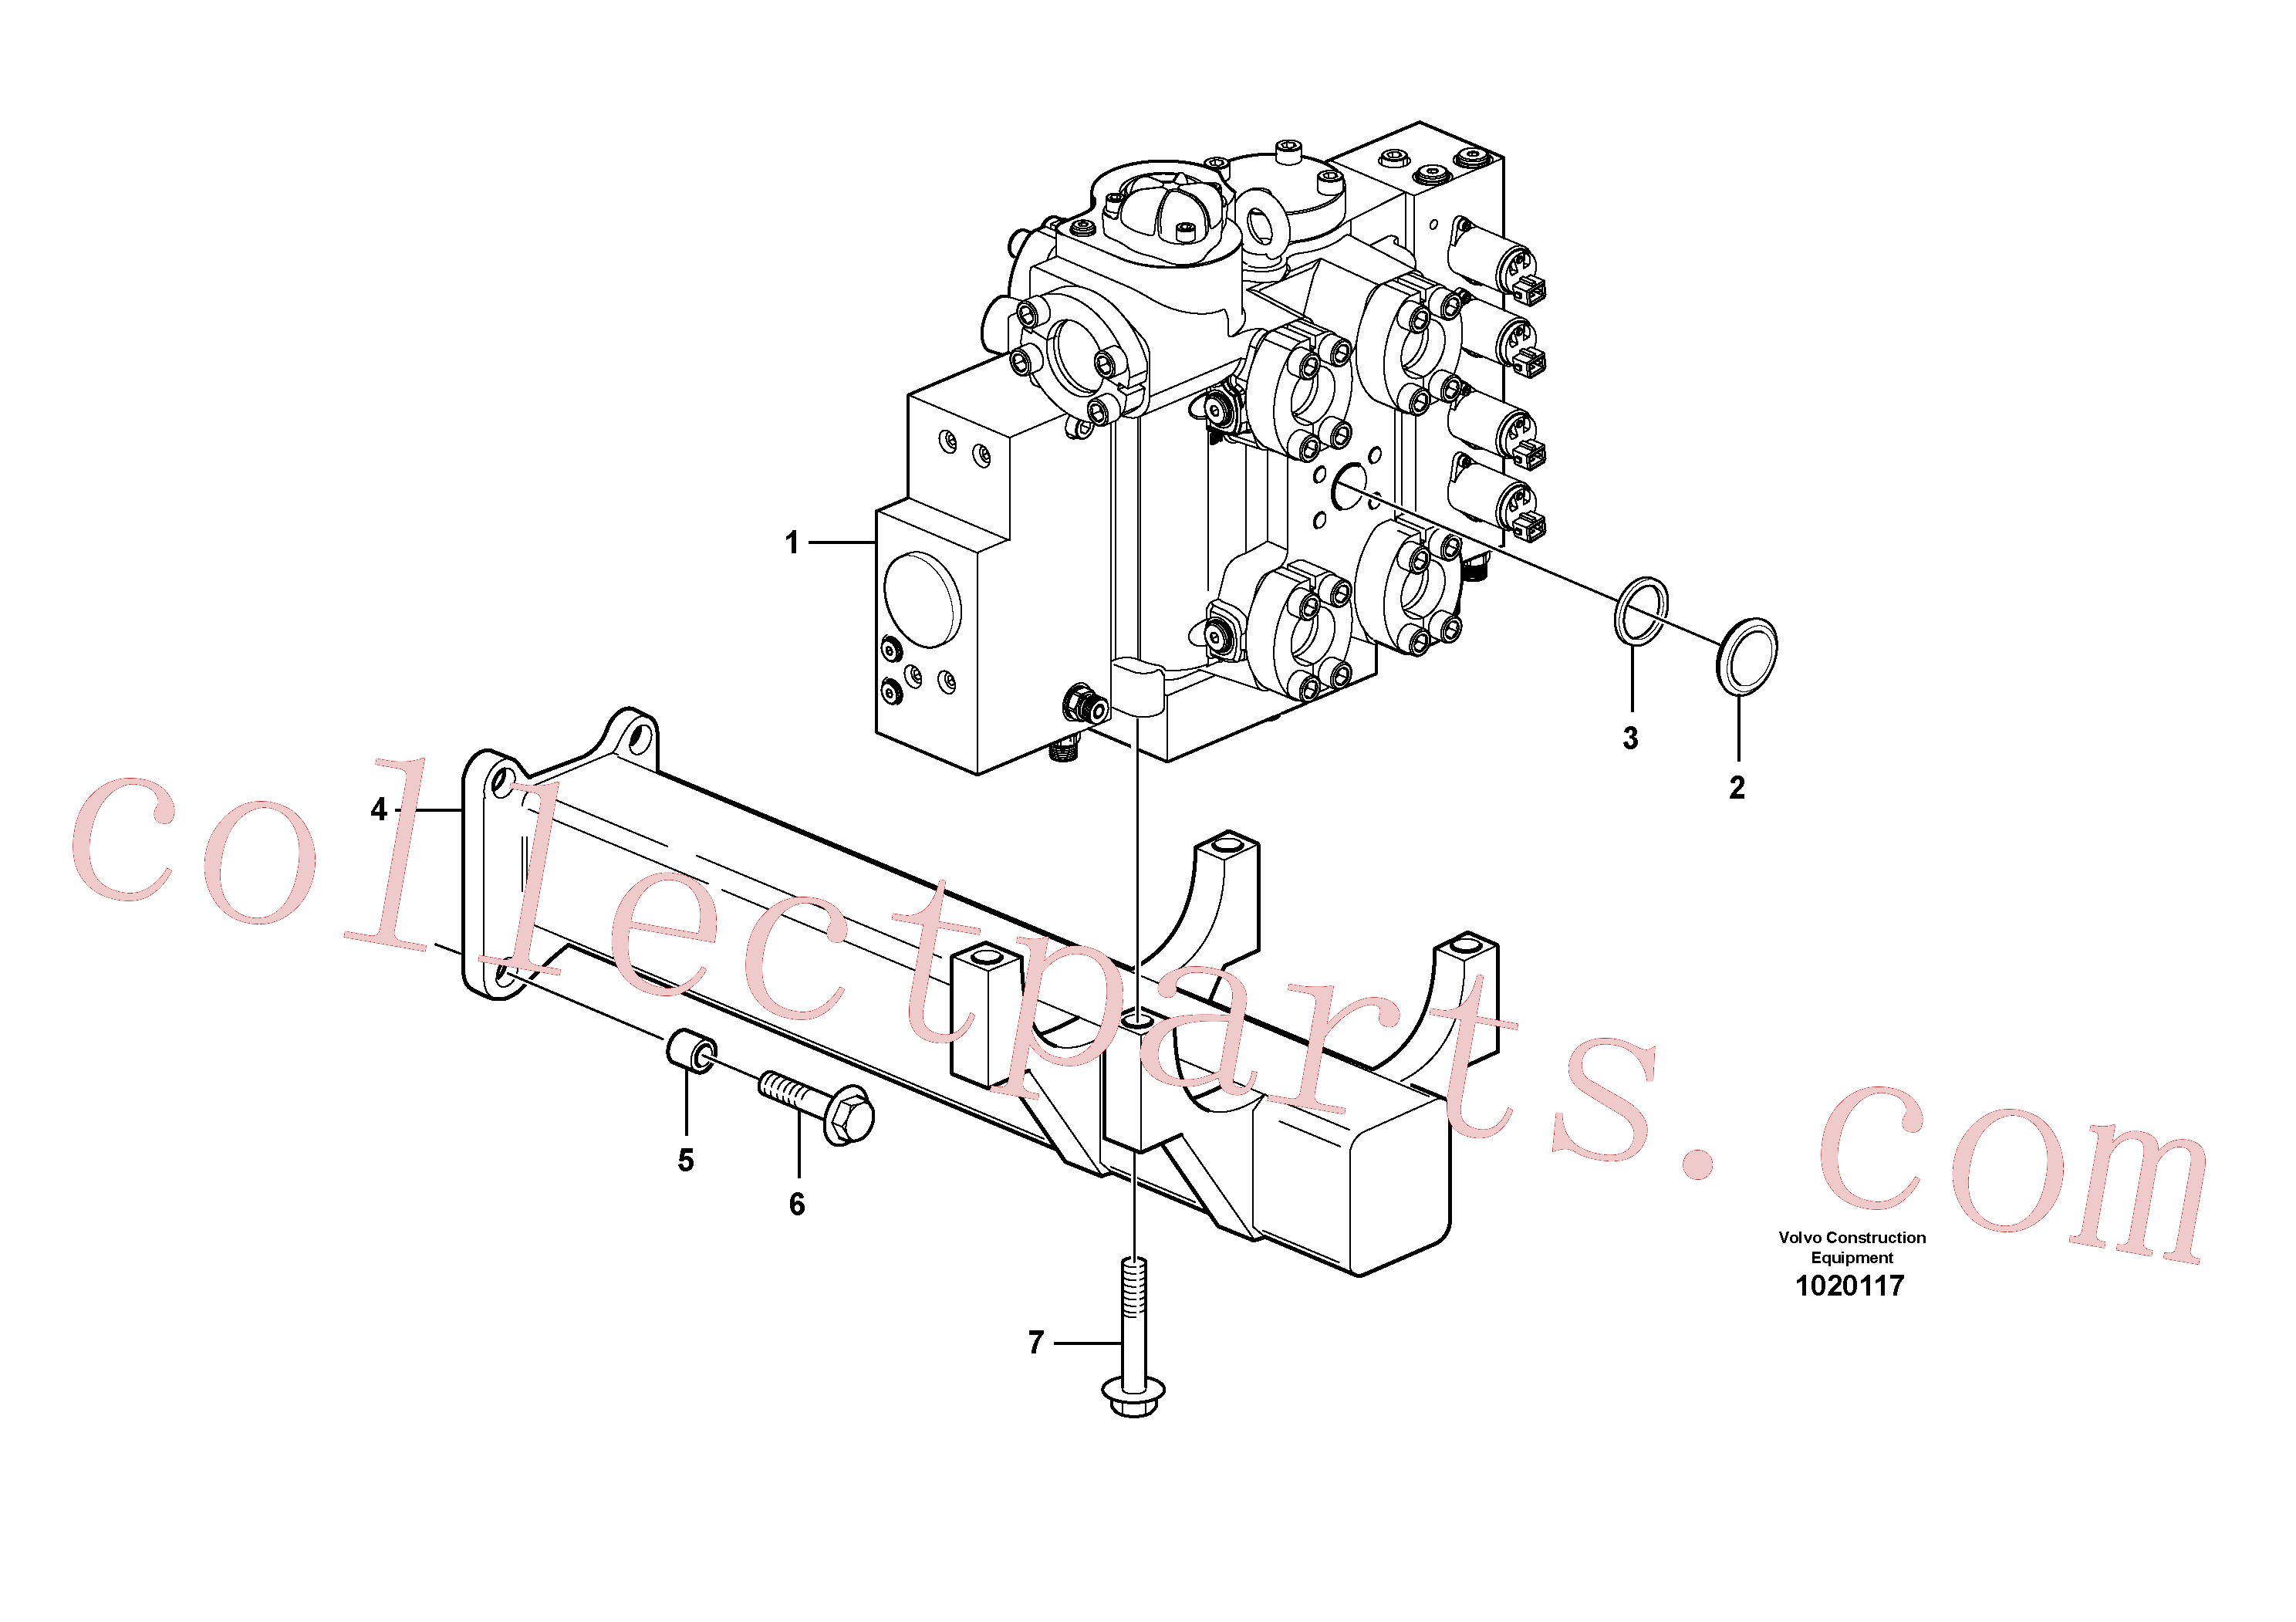 VOE11108798 for Volvo Control valve with fitting parts.(1020117 assembly)